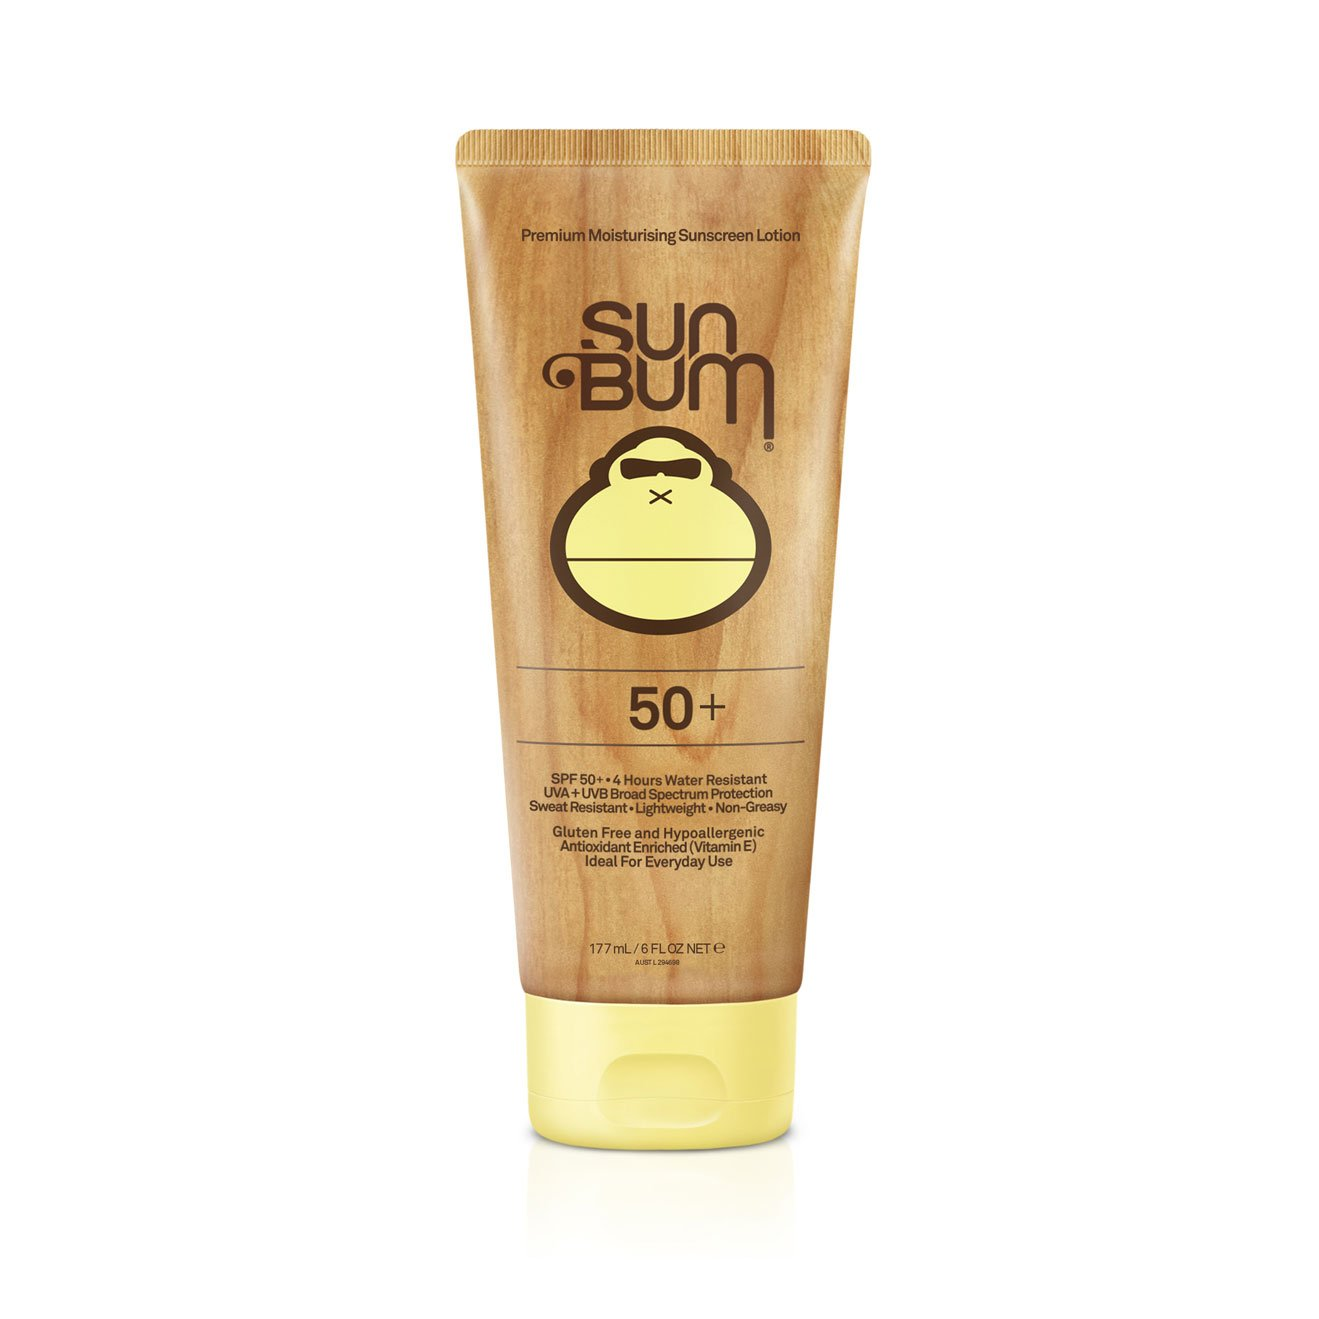 Sun Bum SPF 50+ Lotion 177ml